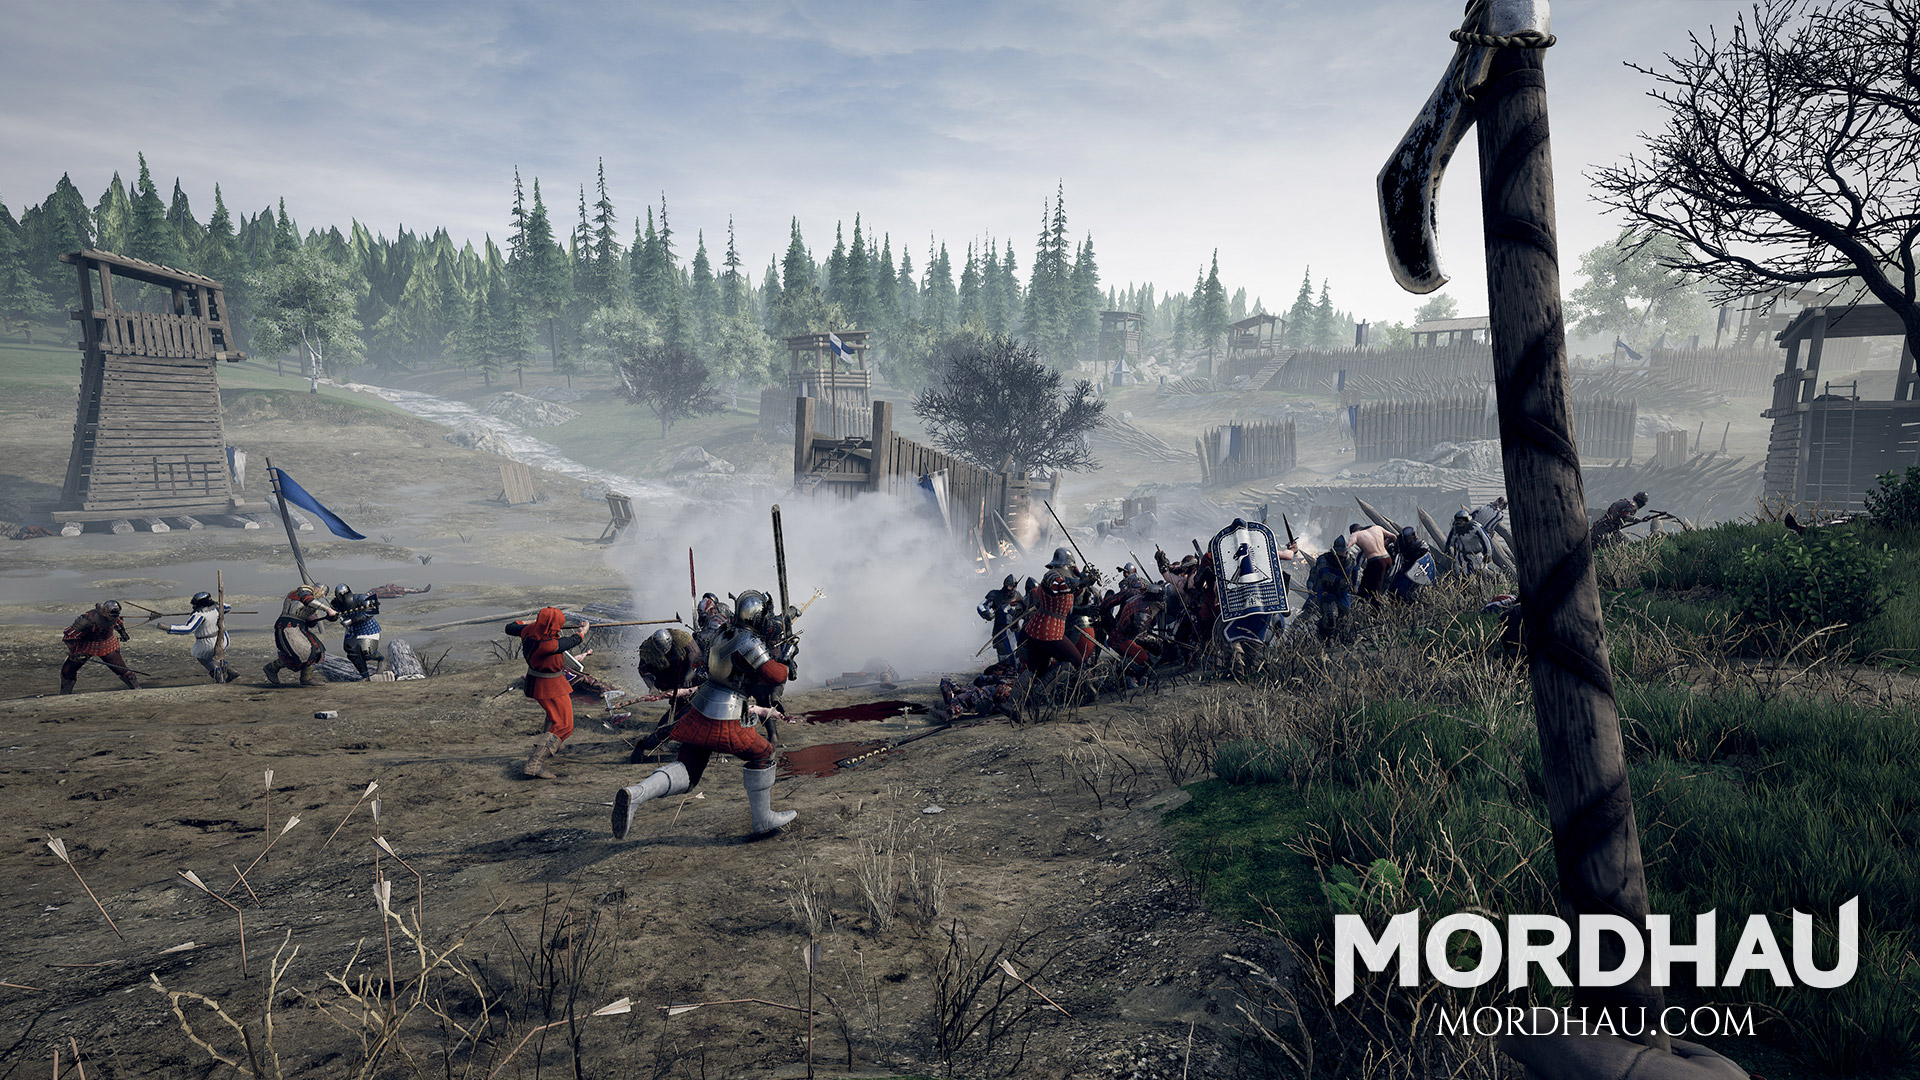 Triternion's Medieval Multiplayer Hack-And-Slasher Game, Mordhau, Is Arriving On PC On April 29